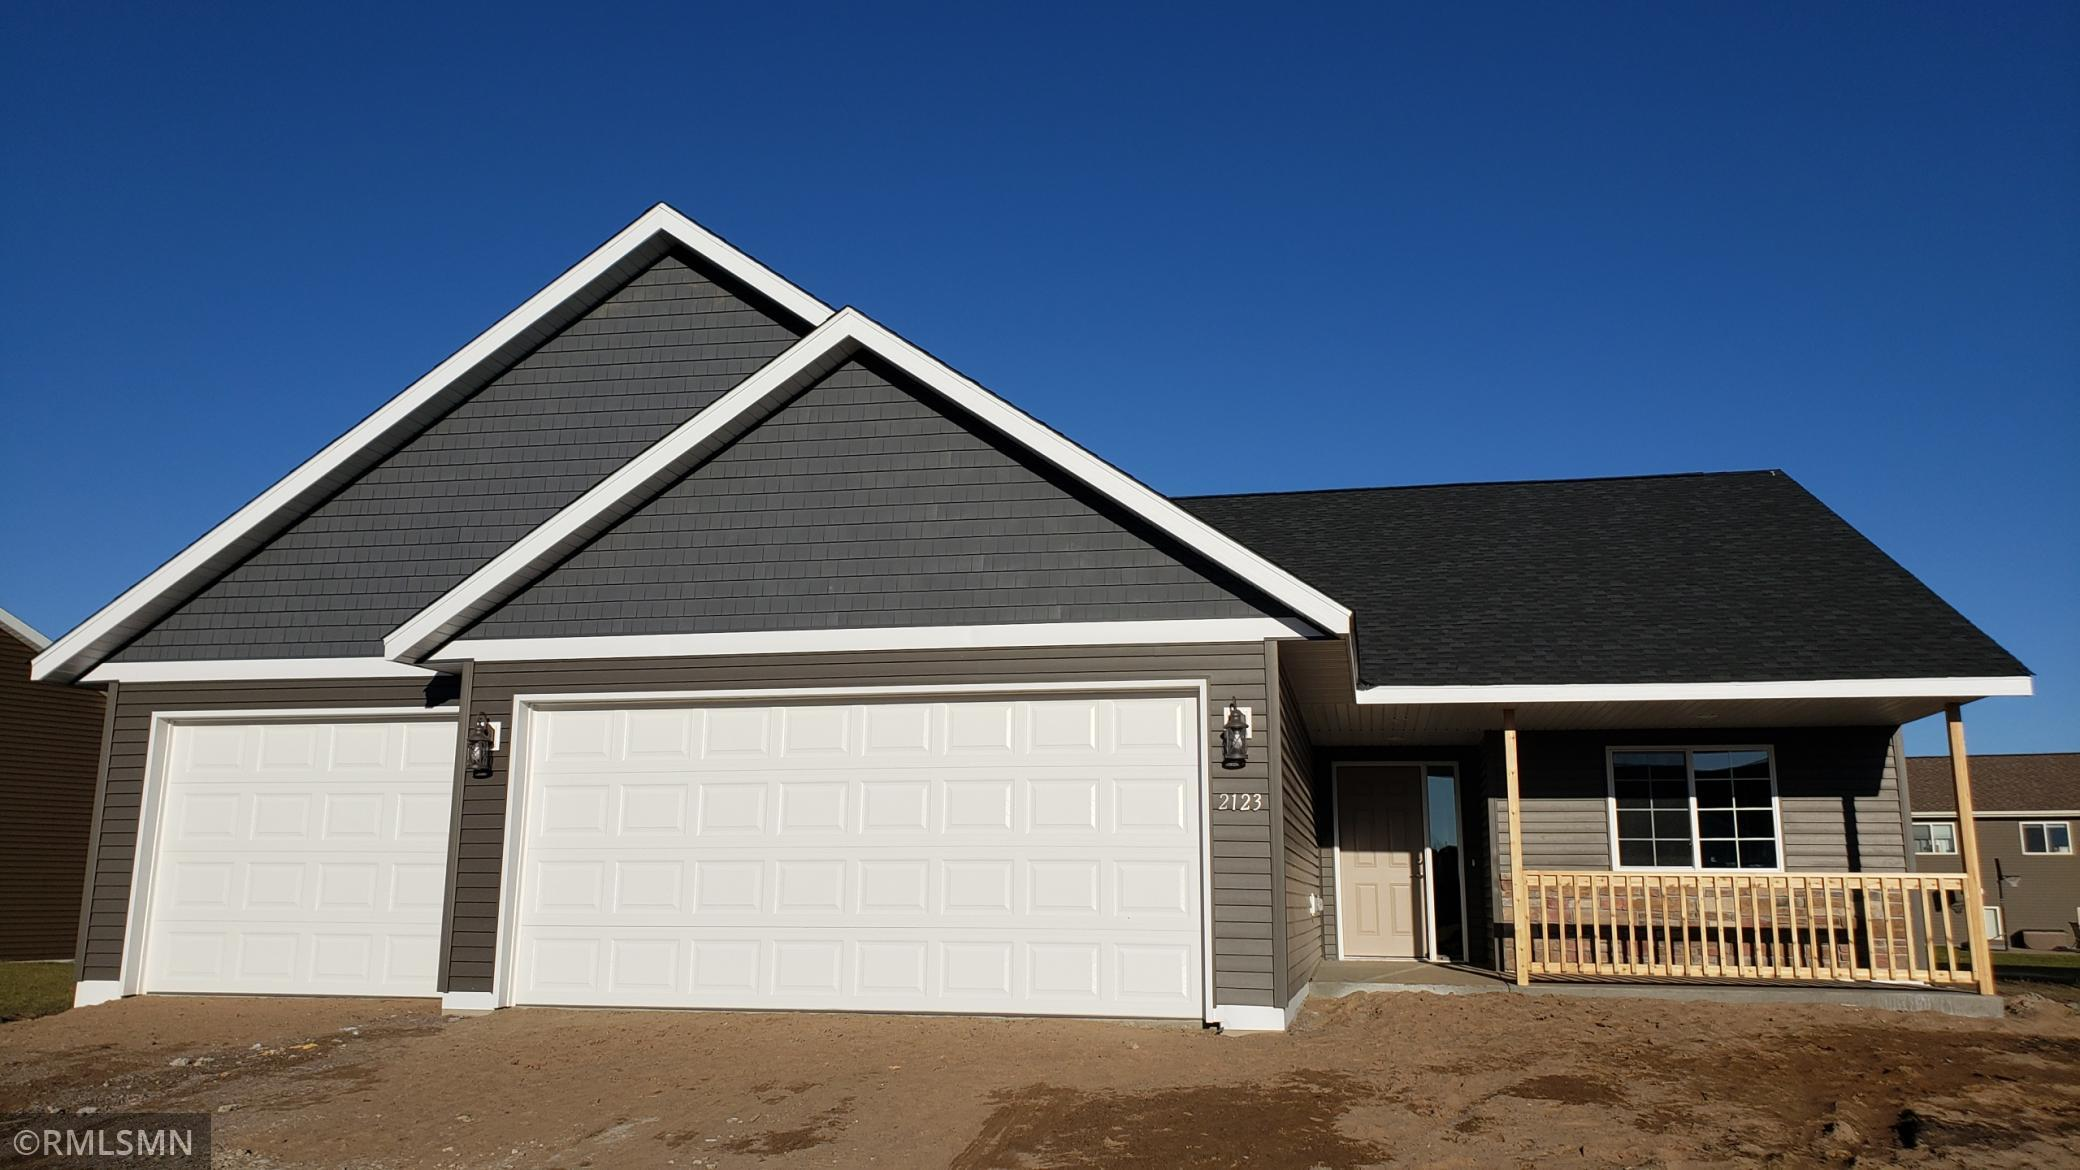 Not actual photos, but this exact home is available for viewing and/or purchase in Sartell. MLS 5655275  Beautiful To Be Built 3 bed, 2 bath patio home. This home features a spectacular master suite with dual sinks, a soaking tub, step in shower and huge walk in closet. Large great room with a cozy electric fireplace and vaulted ceiling. The kitchen features a large center island, granite counters, stainless appliances and large pantry. Insulated three car garage with opener. Sod yard, sprinkler system and driveway. No association. New home warranty included. Buy now and choose your amenities, colors etc!